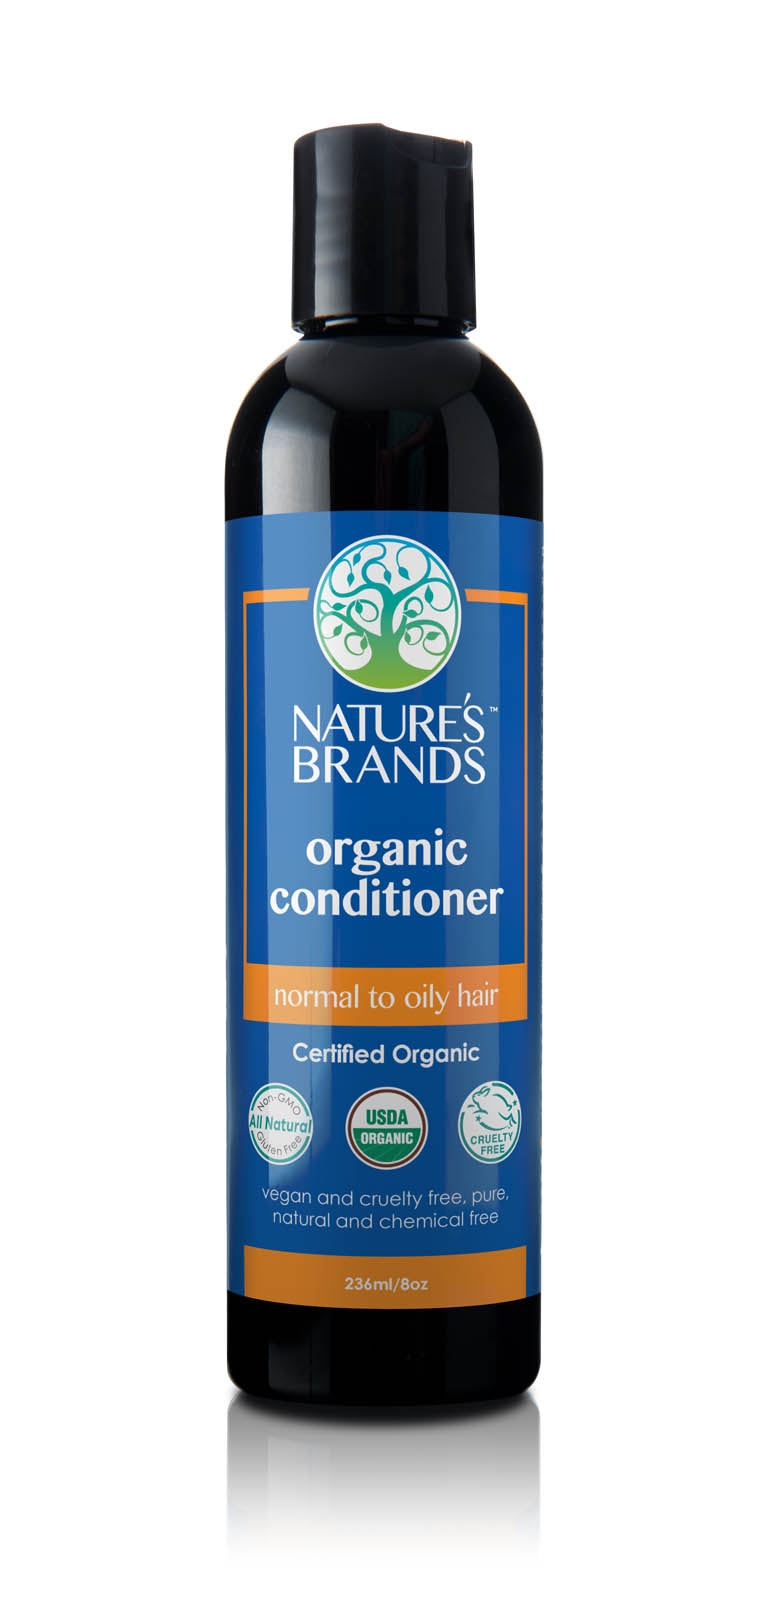 Herbal Choice Mari Organic Conditioner, Normal to Oily Hair - Herbal Choice Mari Organic Conditioner, Normal to Oily Hair - Herbal Choice Mari Organic Conditioner, Normal to Oily Hair